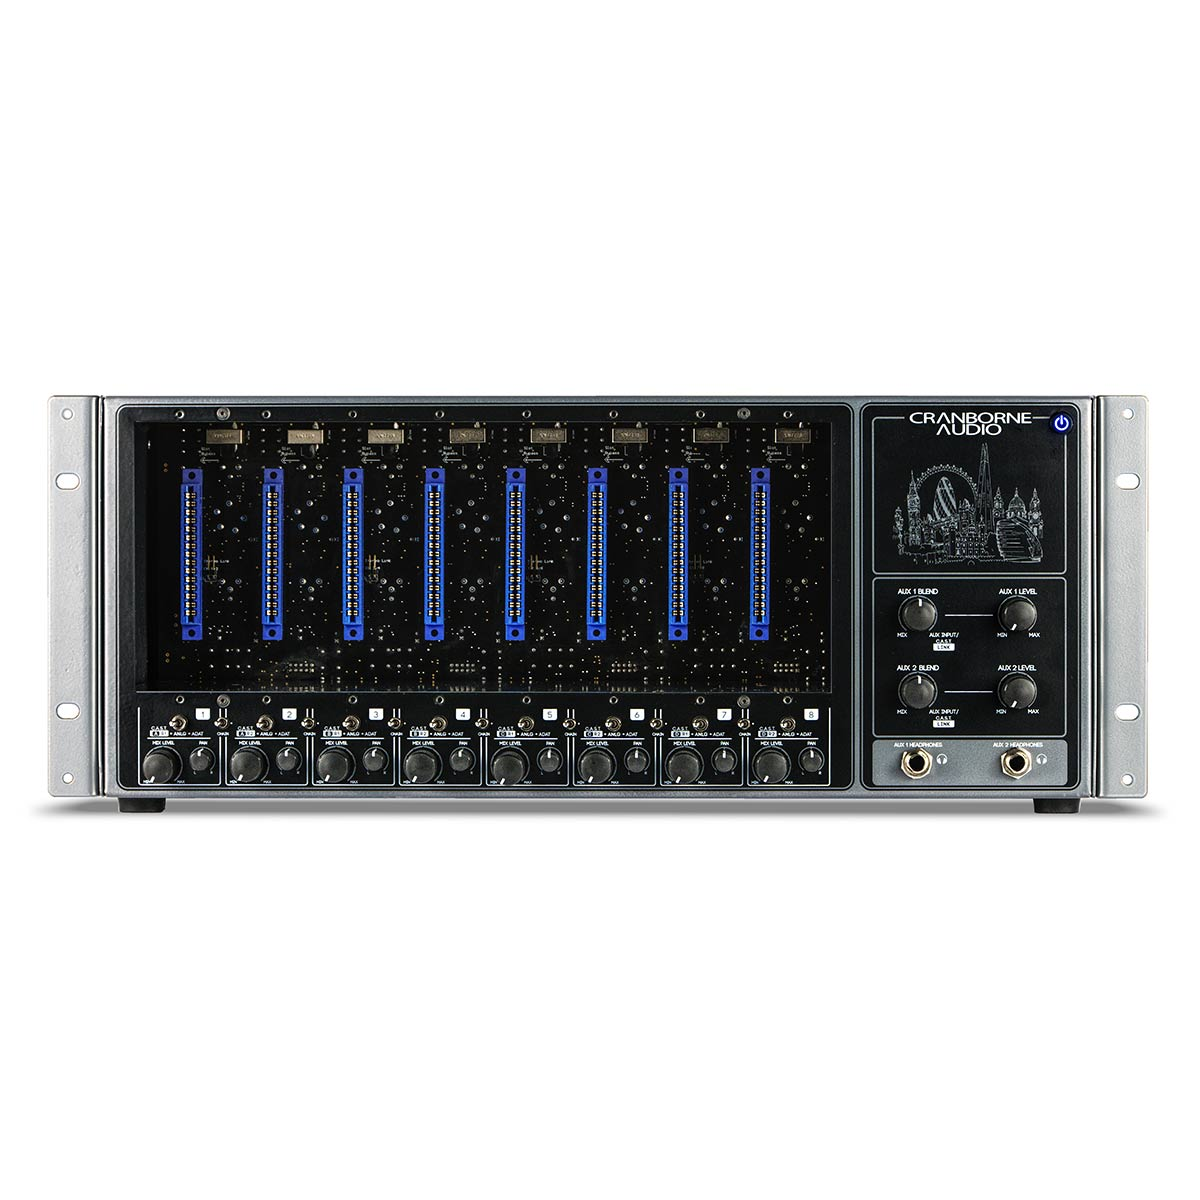 Cranborne Audio 8-Slot 500 Series Rack with analogue summing & ADAT IO